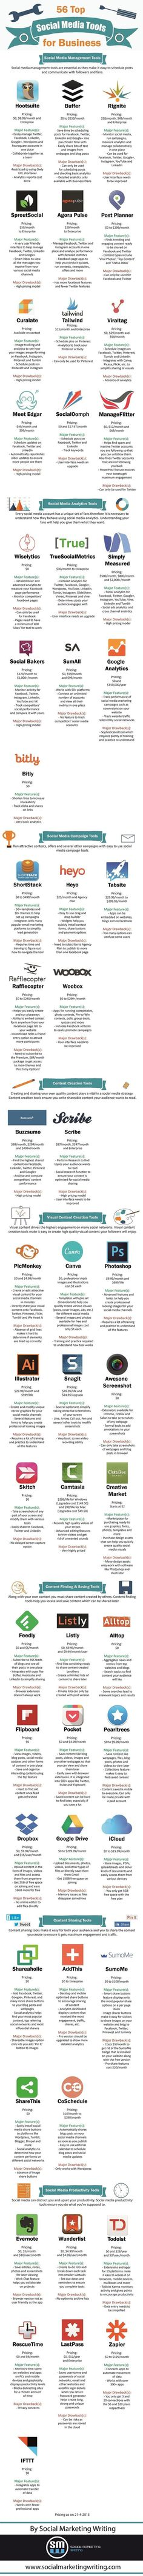 This #infographic illustrates 56 #socialmedia management, analytics, visual content creation, curation, content sharing, and social media productivity tools. It also shows the pricing, major features and major drawbacks.